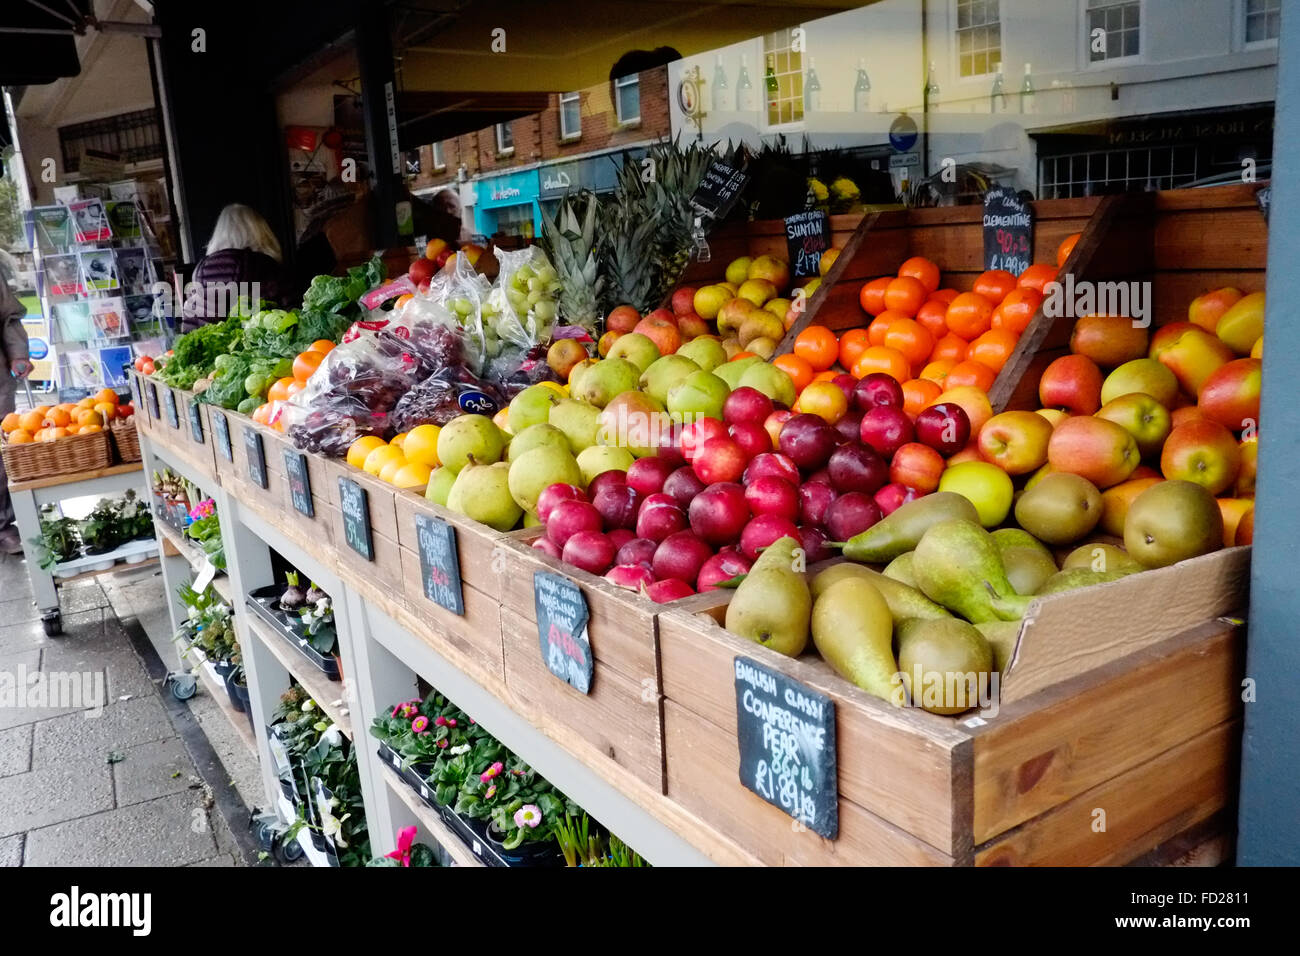 A display of fresh fruit for sale outside of a greengrocers shop on a high st in an english town - Stock Image